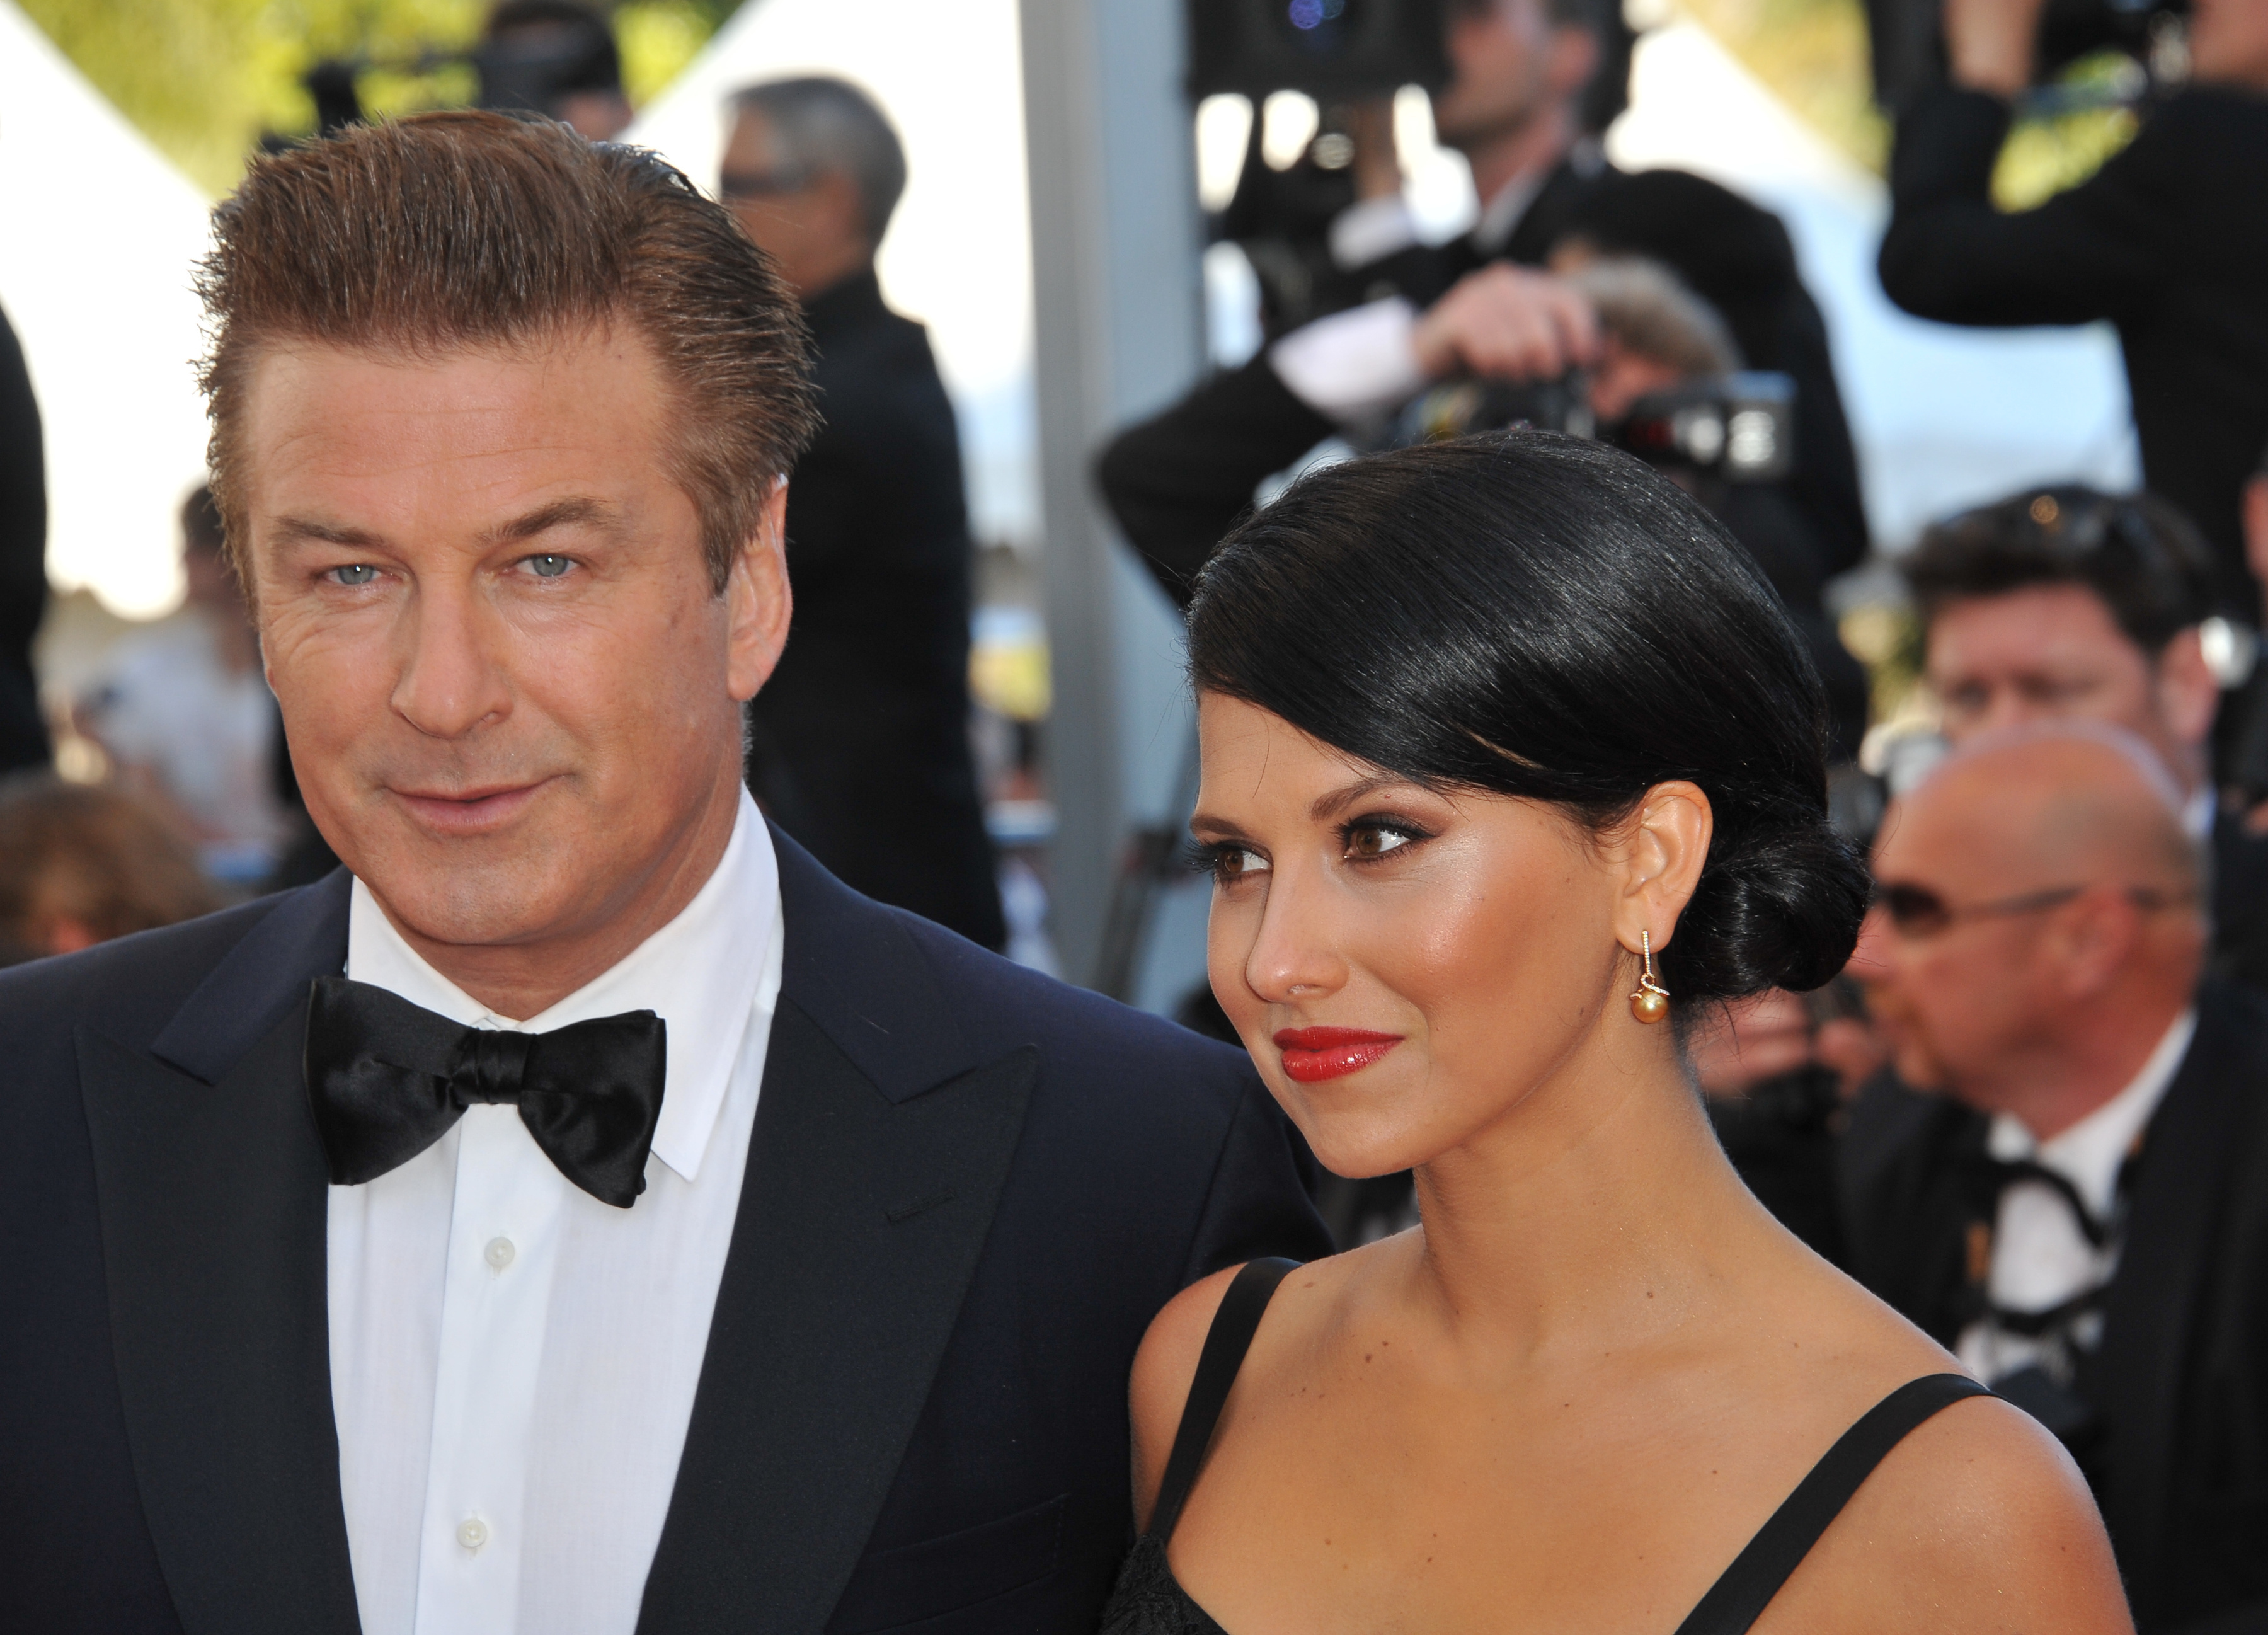 Actor Alec Baldwin and wife Hilaria Baldwin relationships with big age difference